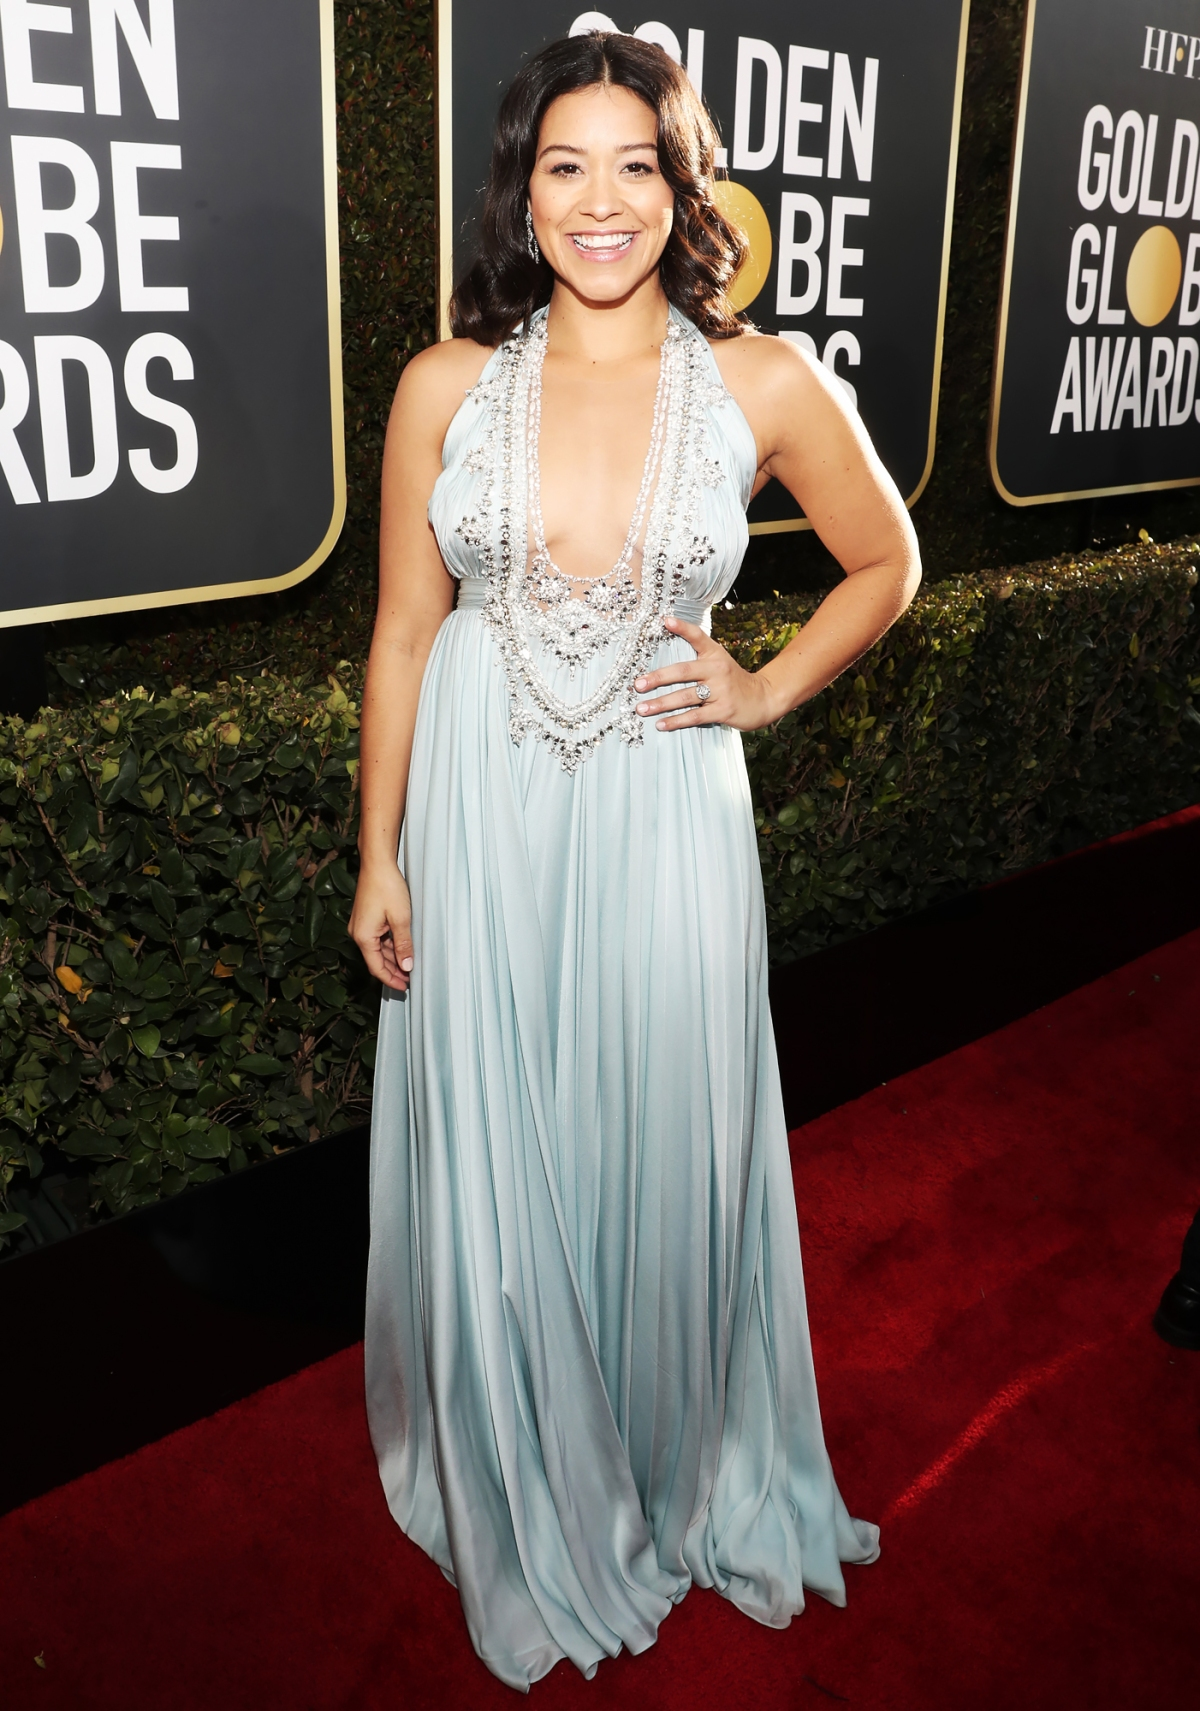 ecad1793774 Golden Globes 2019 Red Carpet Fashion  See Celeb Dresses